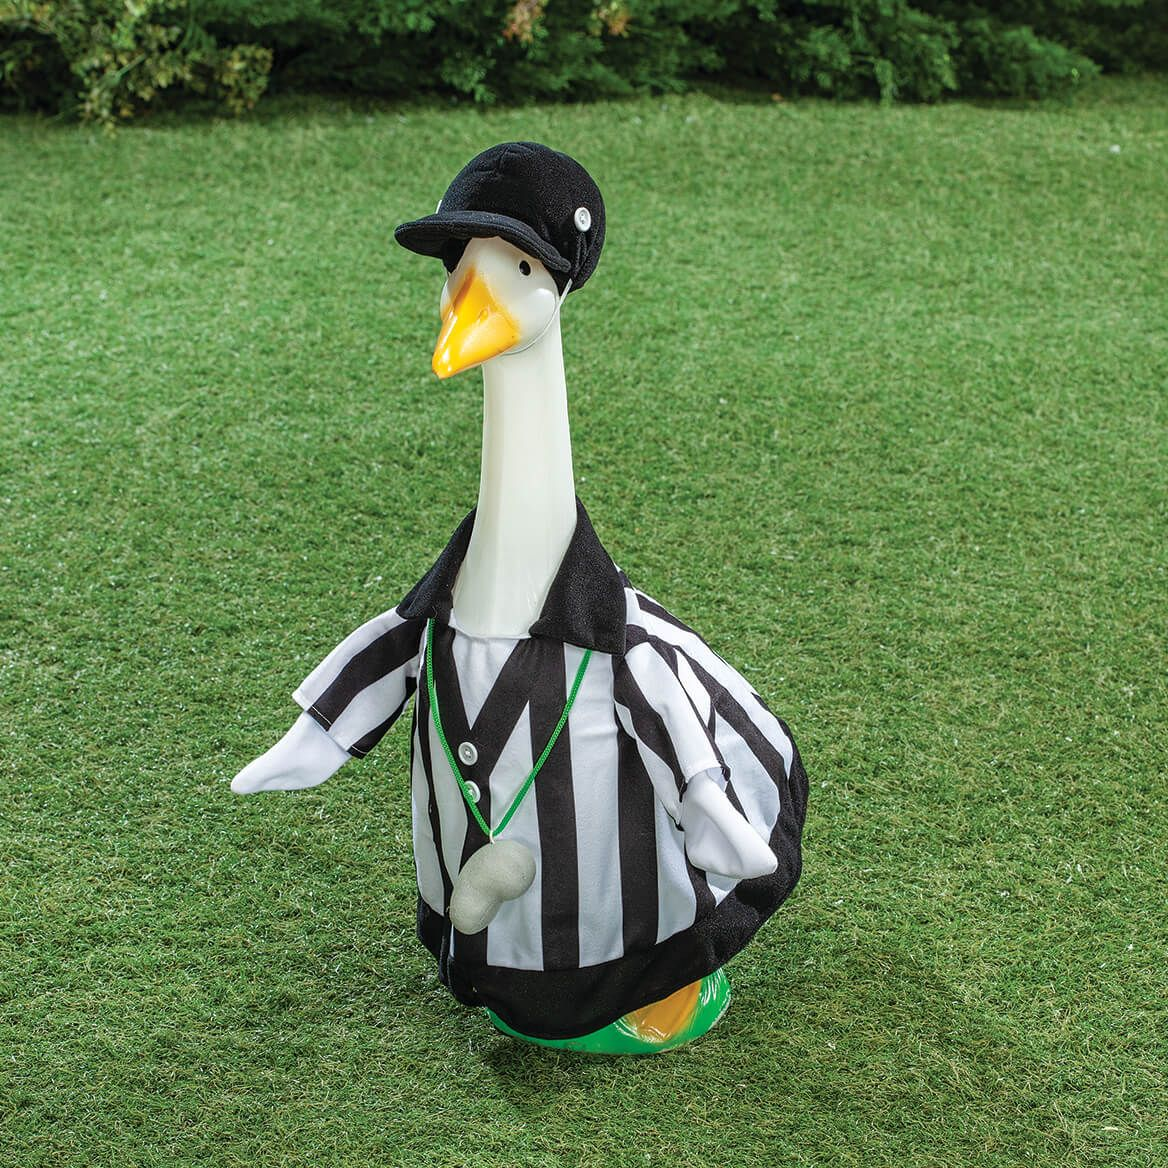 Referee Goose Outfit-369508